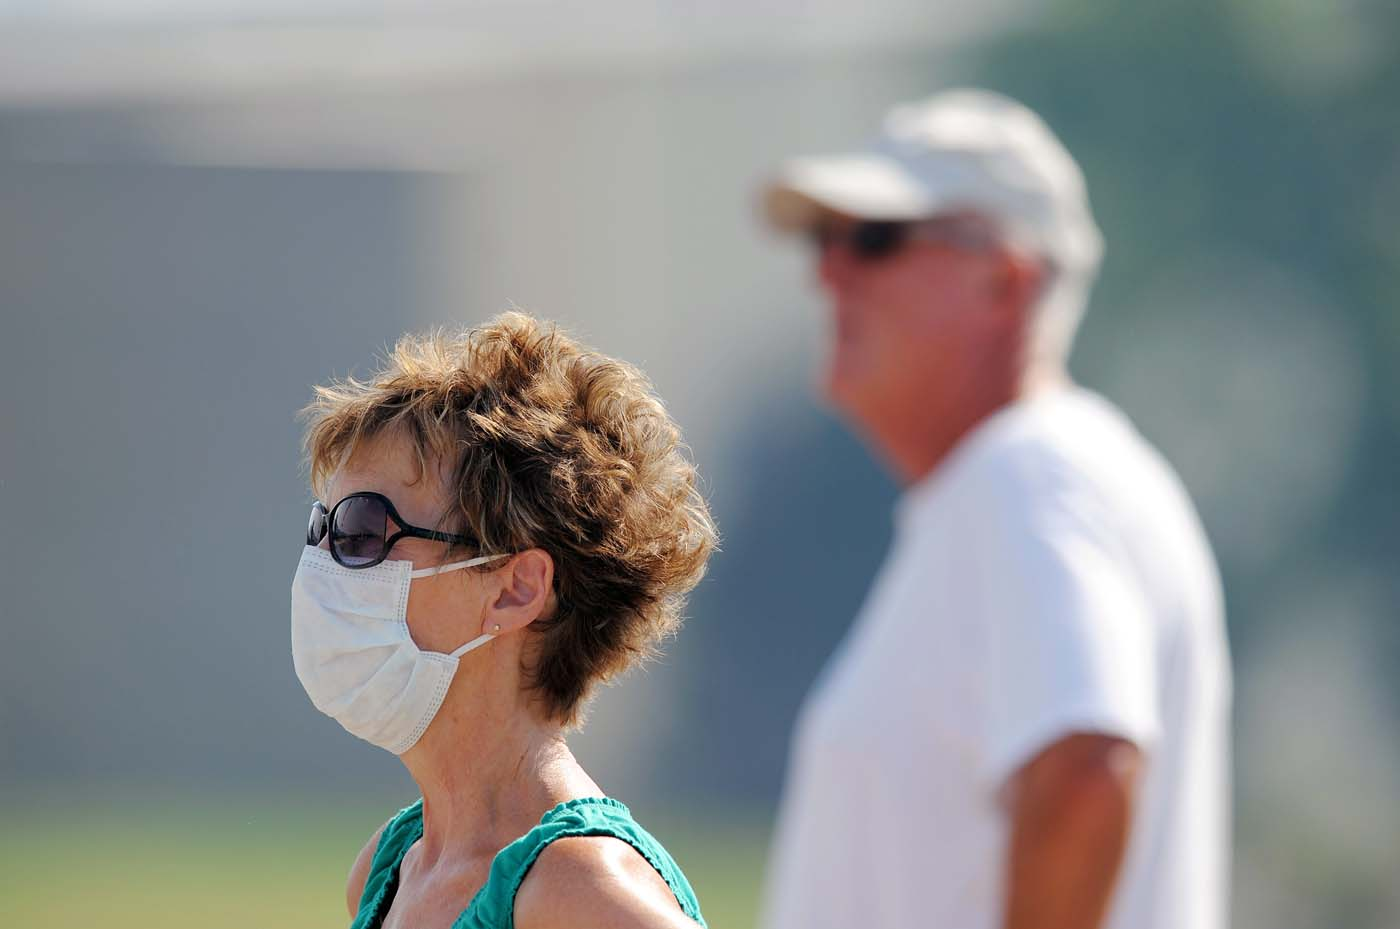 JUNE 27: Susan Custer (L) and her husband Gary Custer watch the Waldo Canyon fire on June 27, 2012 in Colorado Springs, Colorado. The fire burned several homes yesterday as it expanded to 15,000 acres, with over 32,000 people having been evacuated. (Chris Schneider/Getty Images)